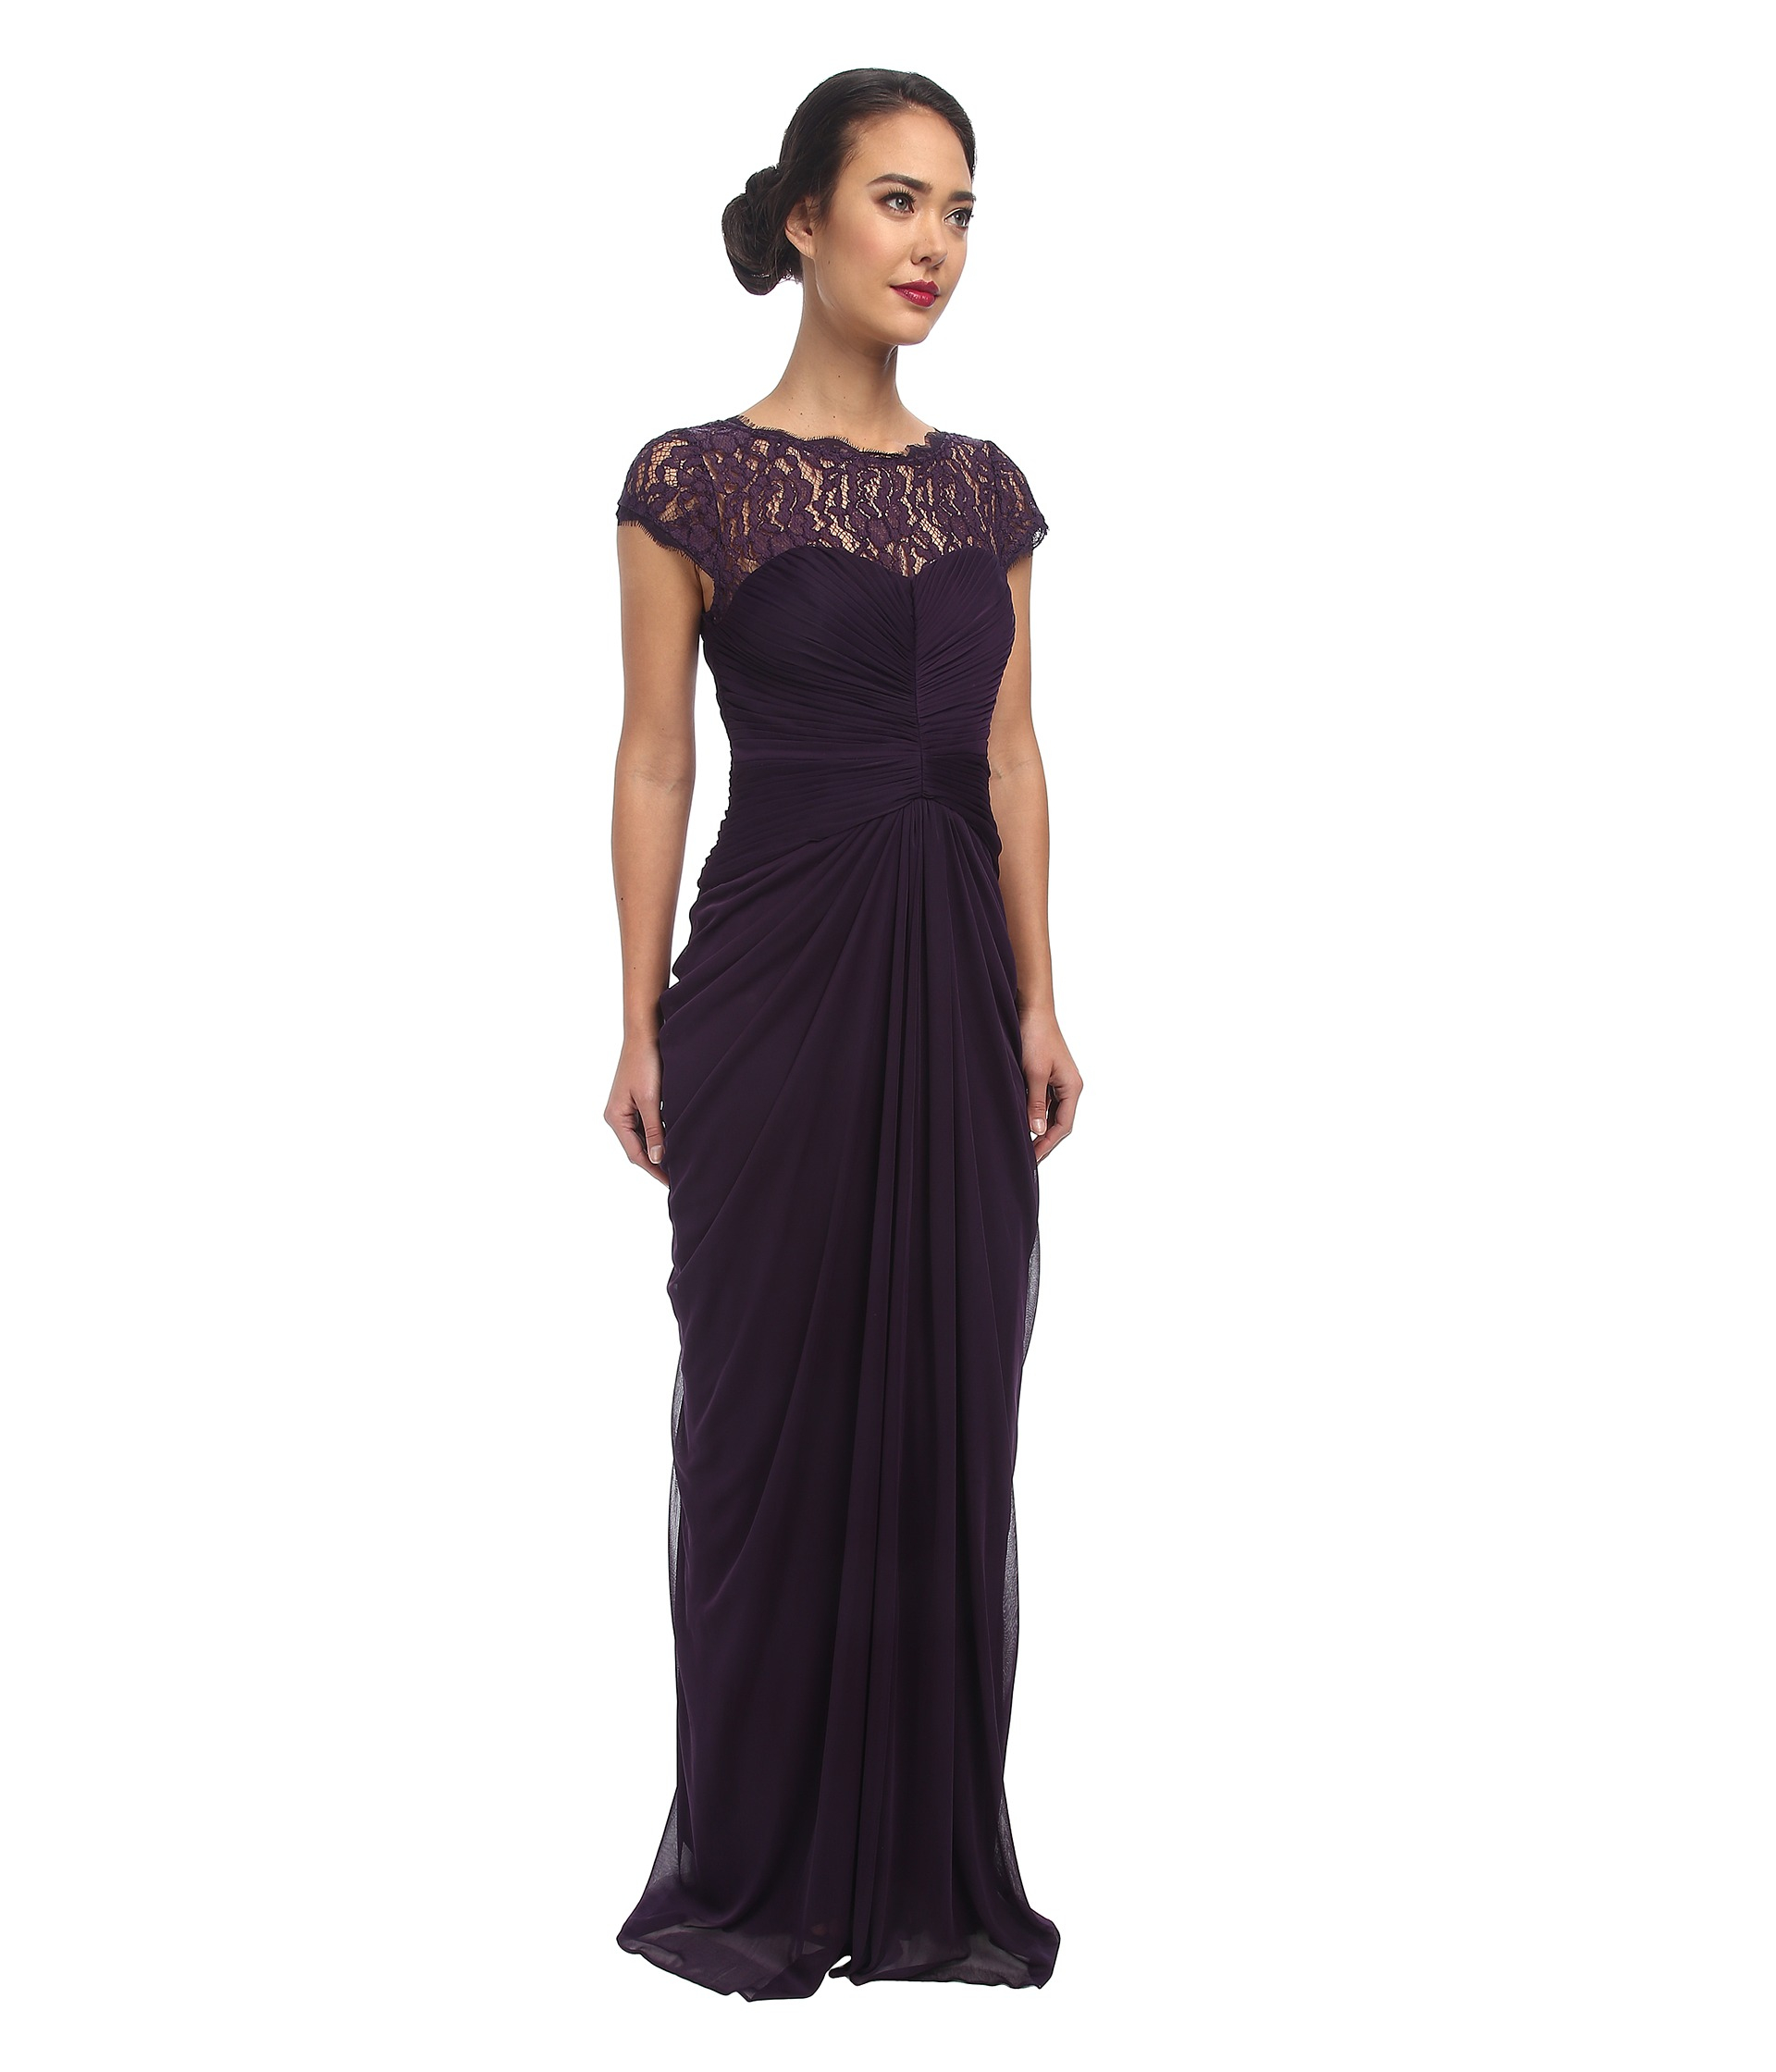 Lyst - Adrianna Papell Lace Bodice On Draped Skirt in Purple